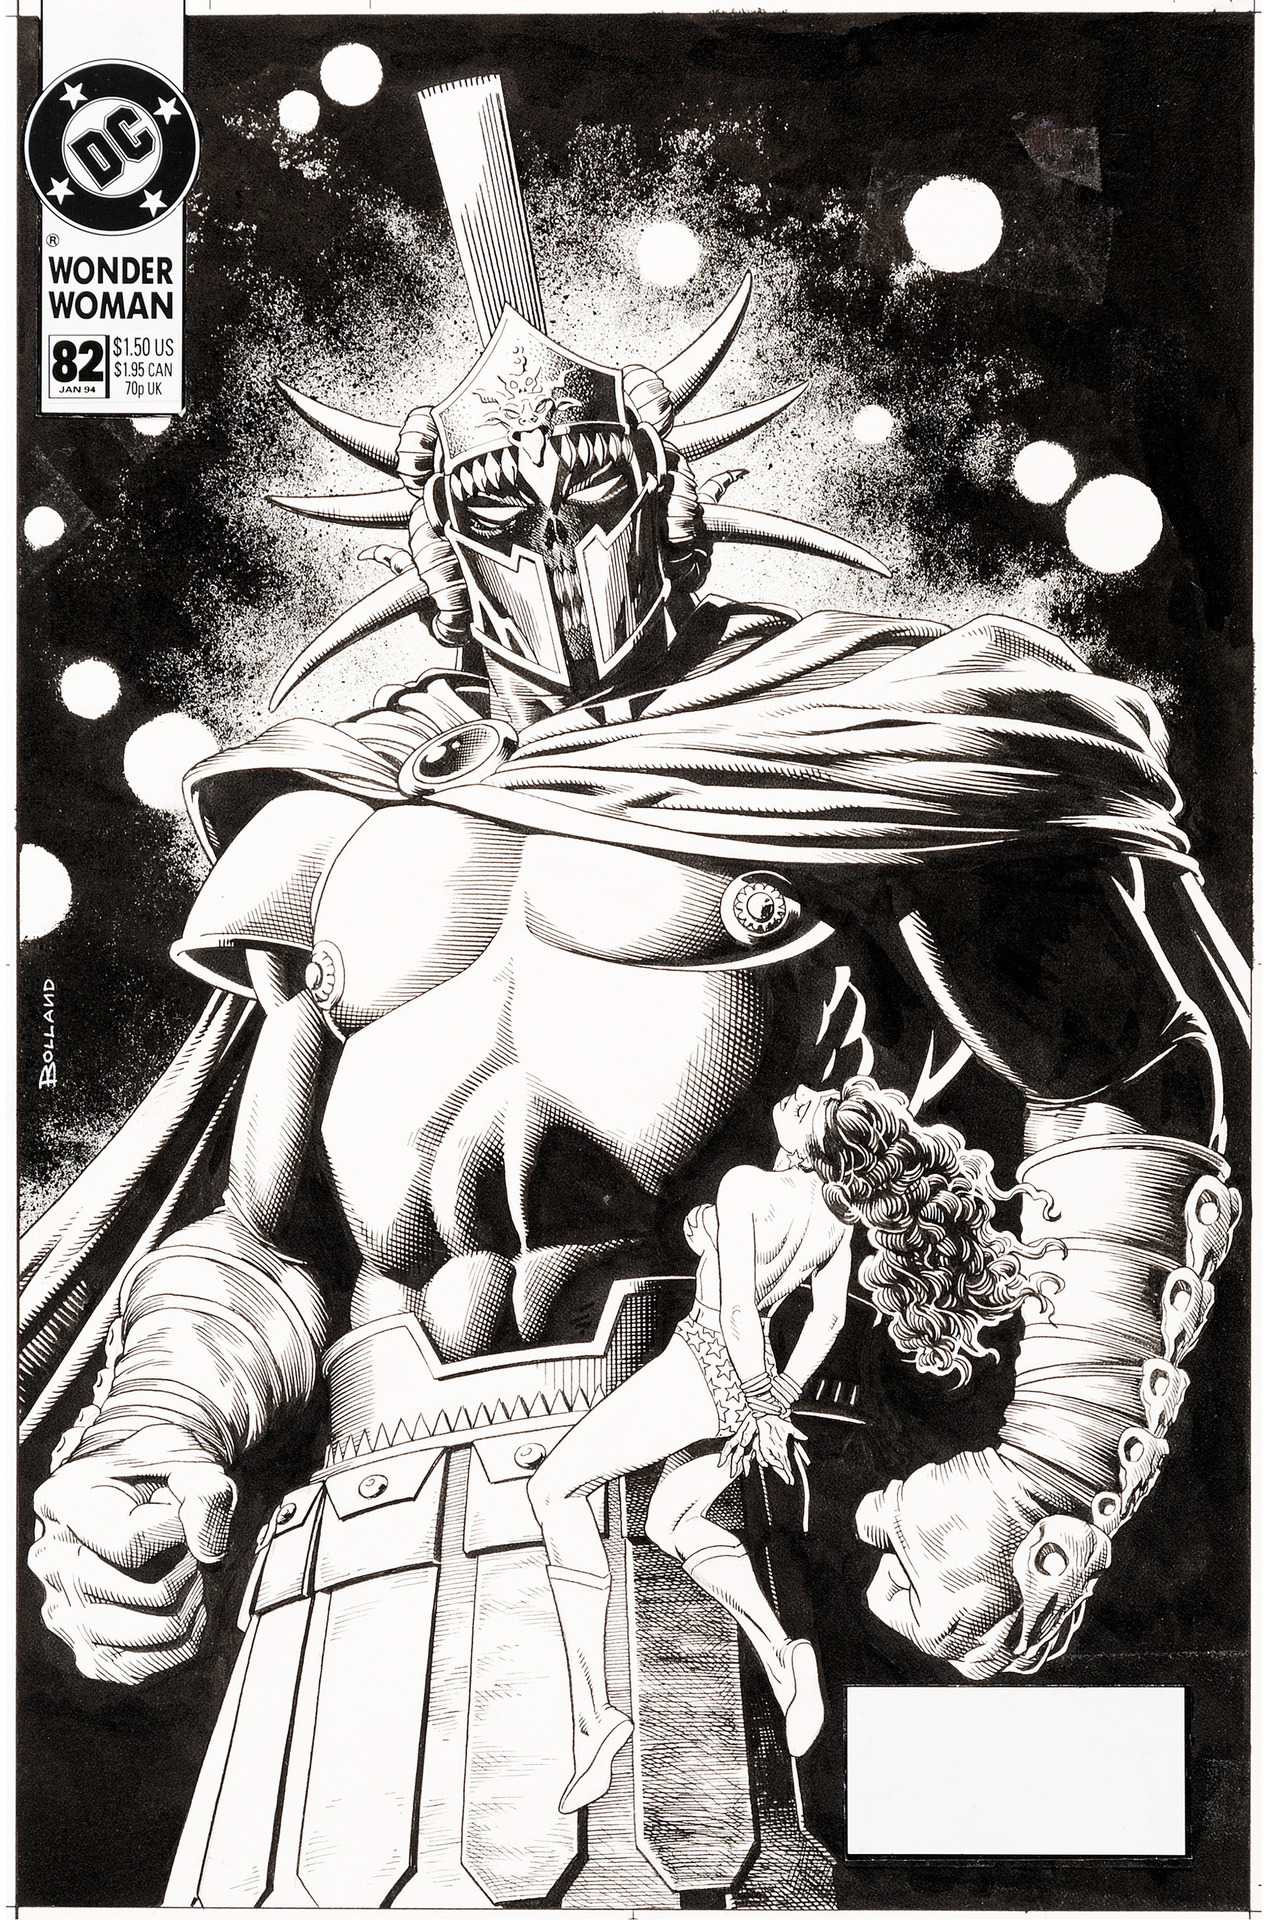 Original cover art by Brian Bolland from Wonder Woman #82, 1994